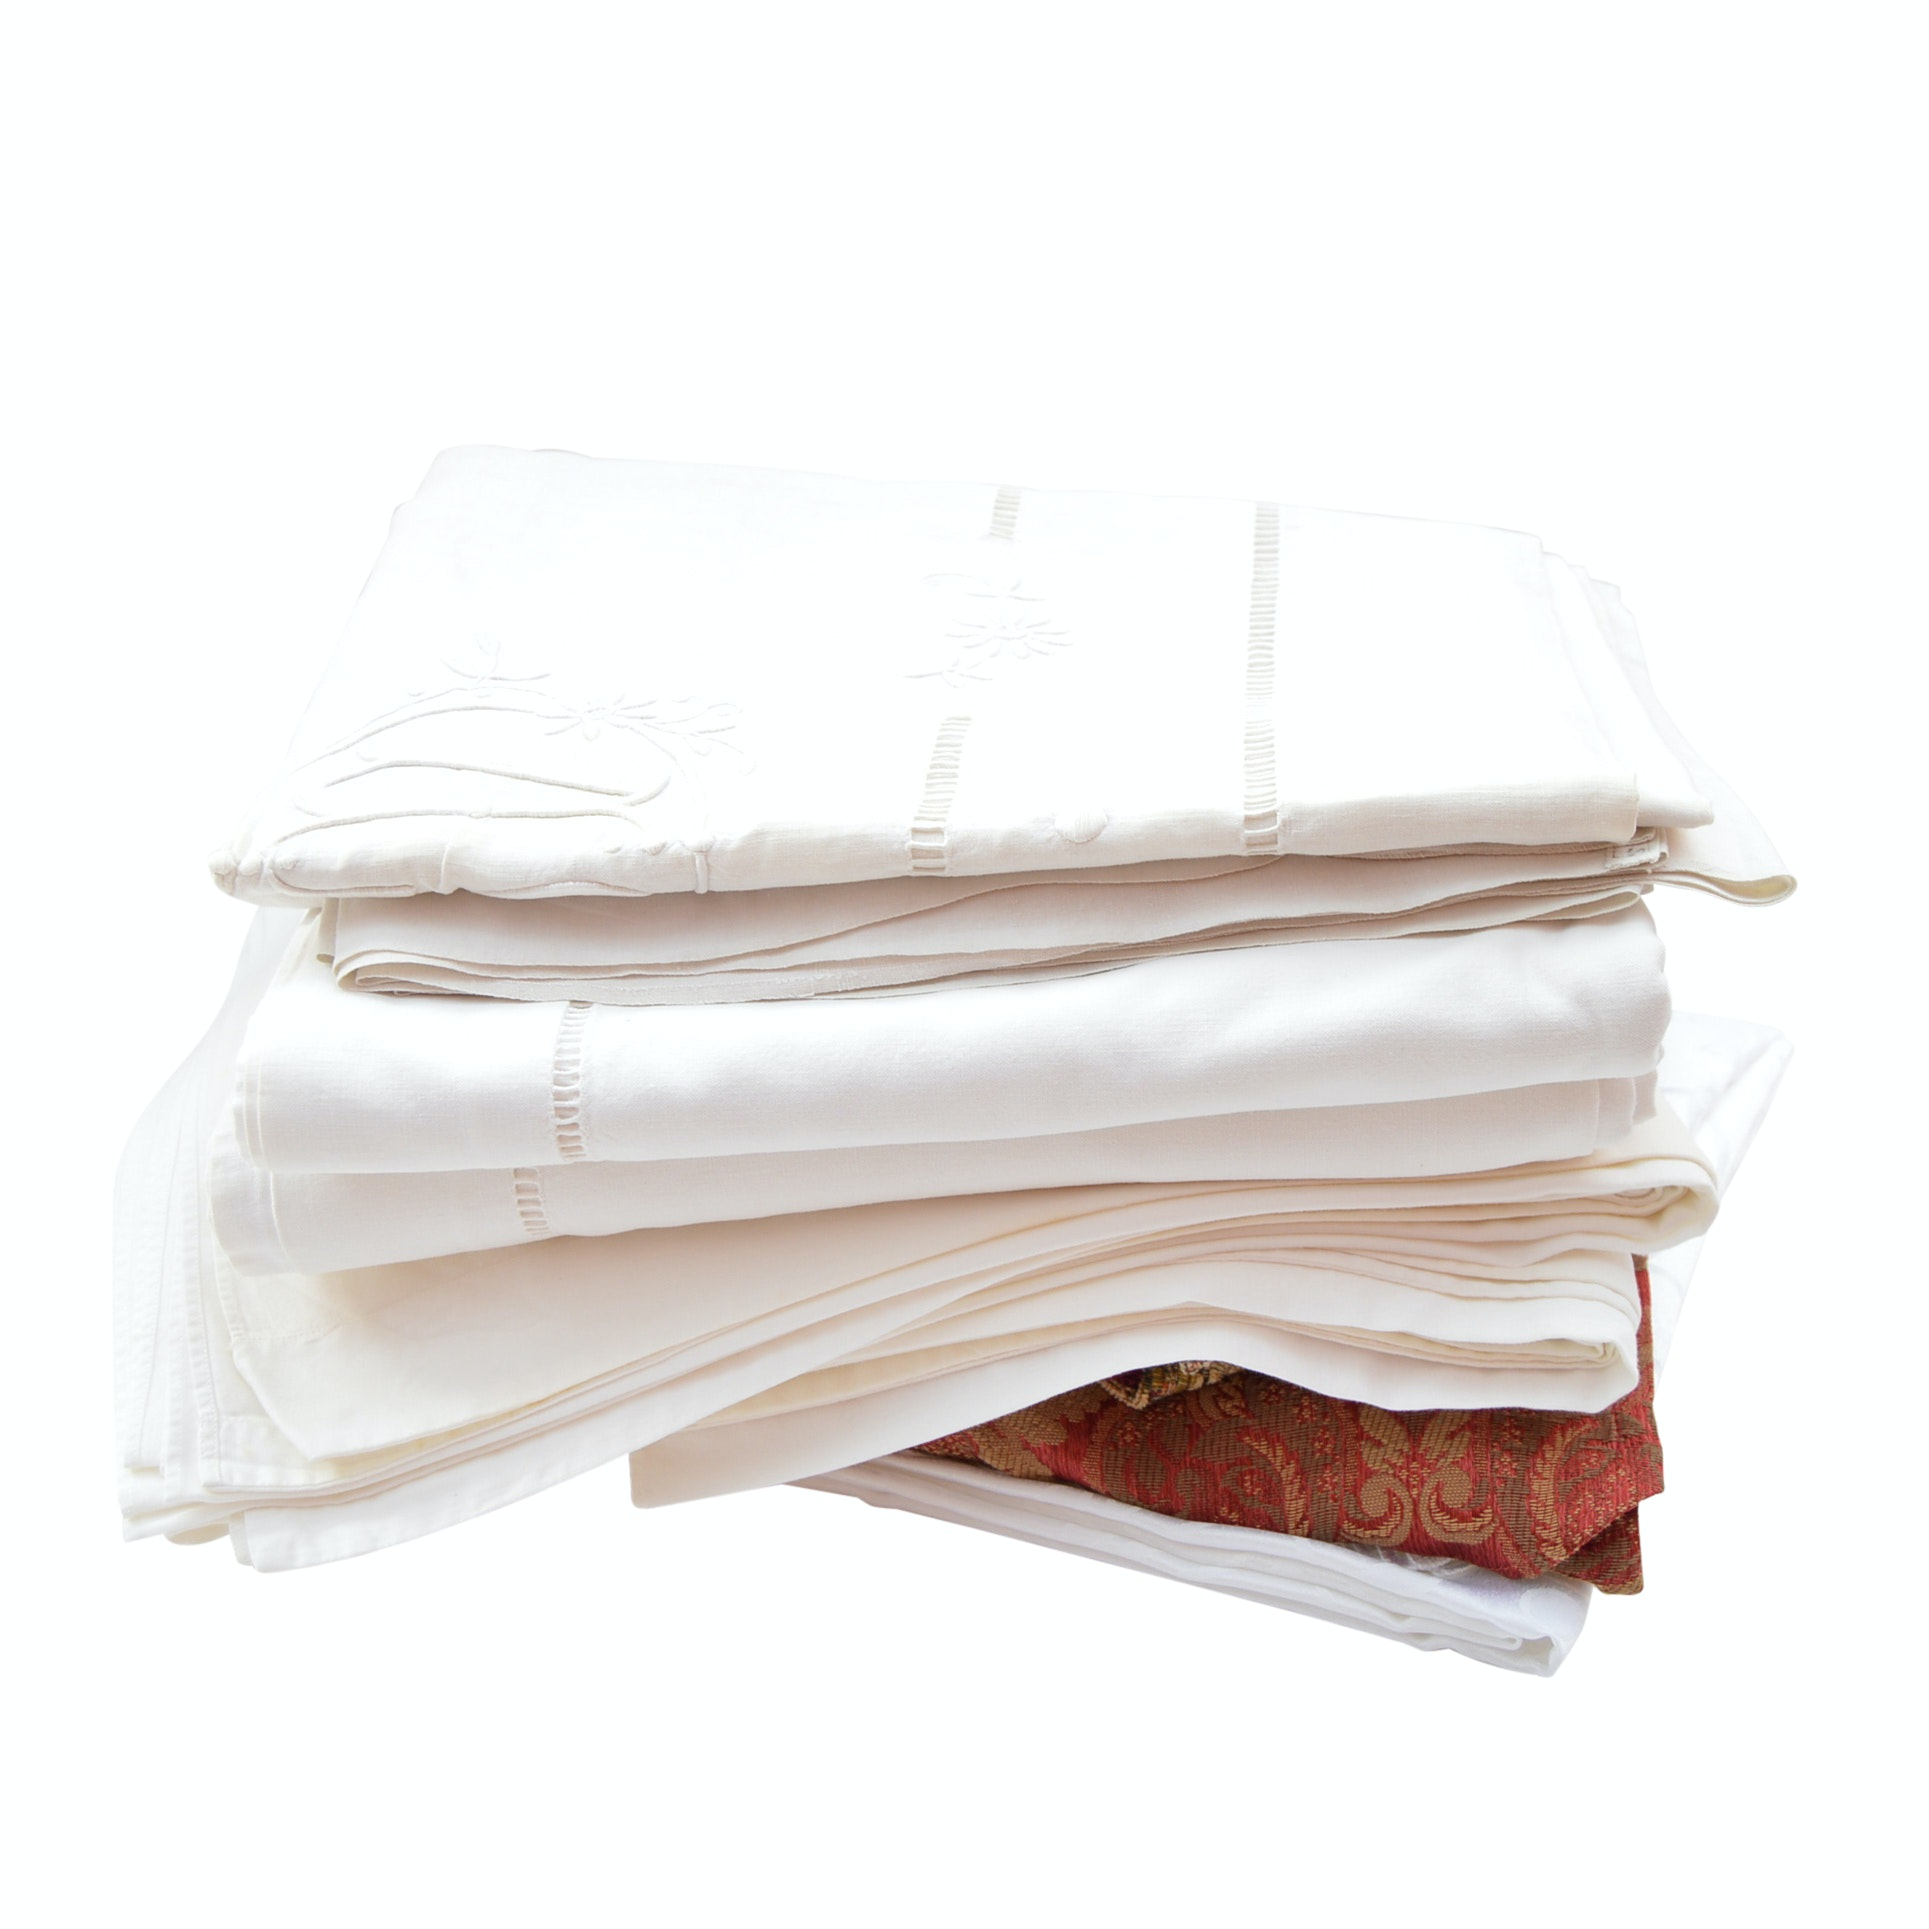 Vintage Linen Sheets and Tablecloths